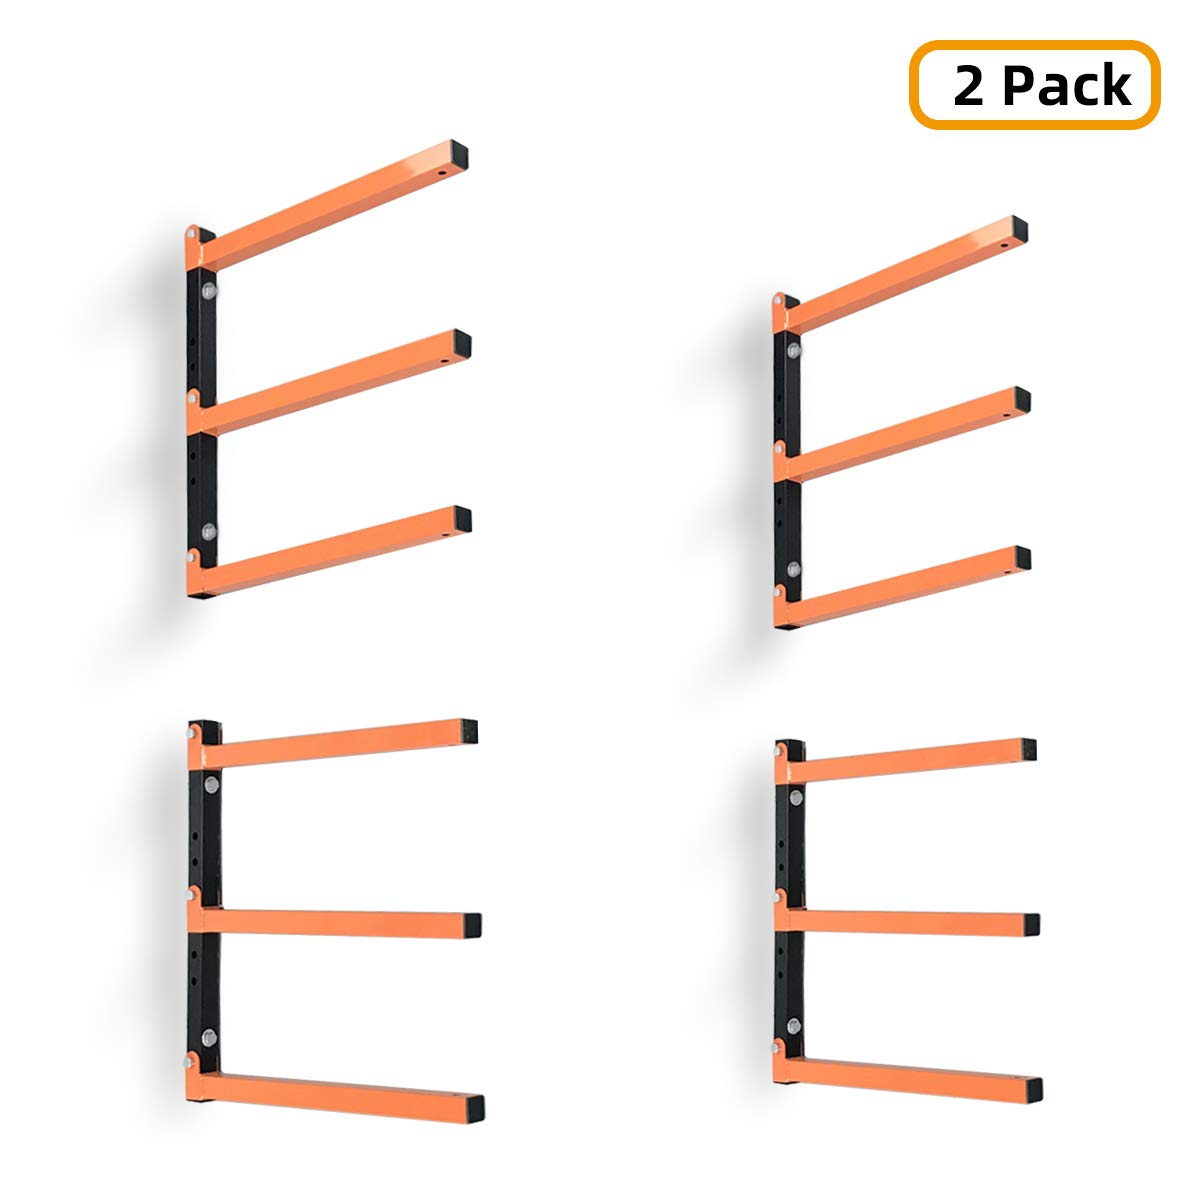 Homydom Wood Organizer and Lumber Storage Metal Rack with 3-Level Wall Mount, 2 Pack by Homydom